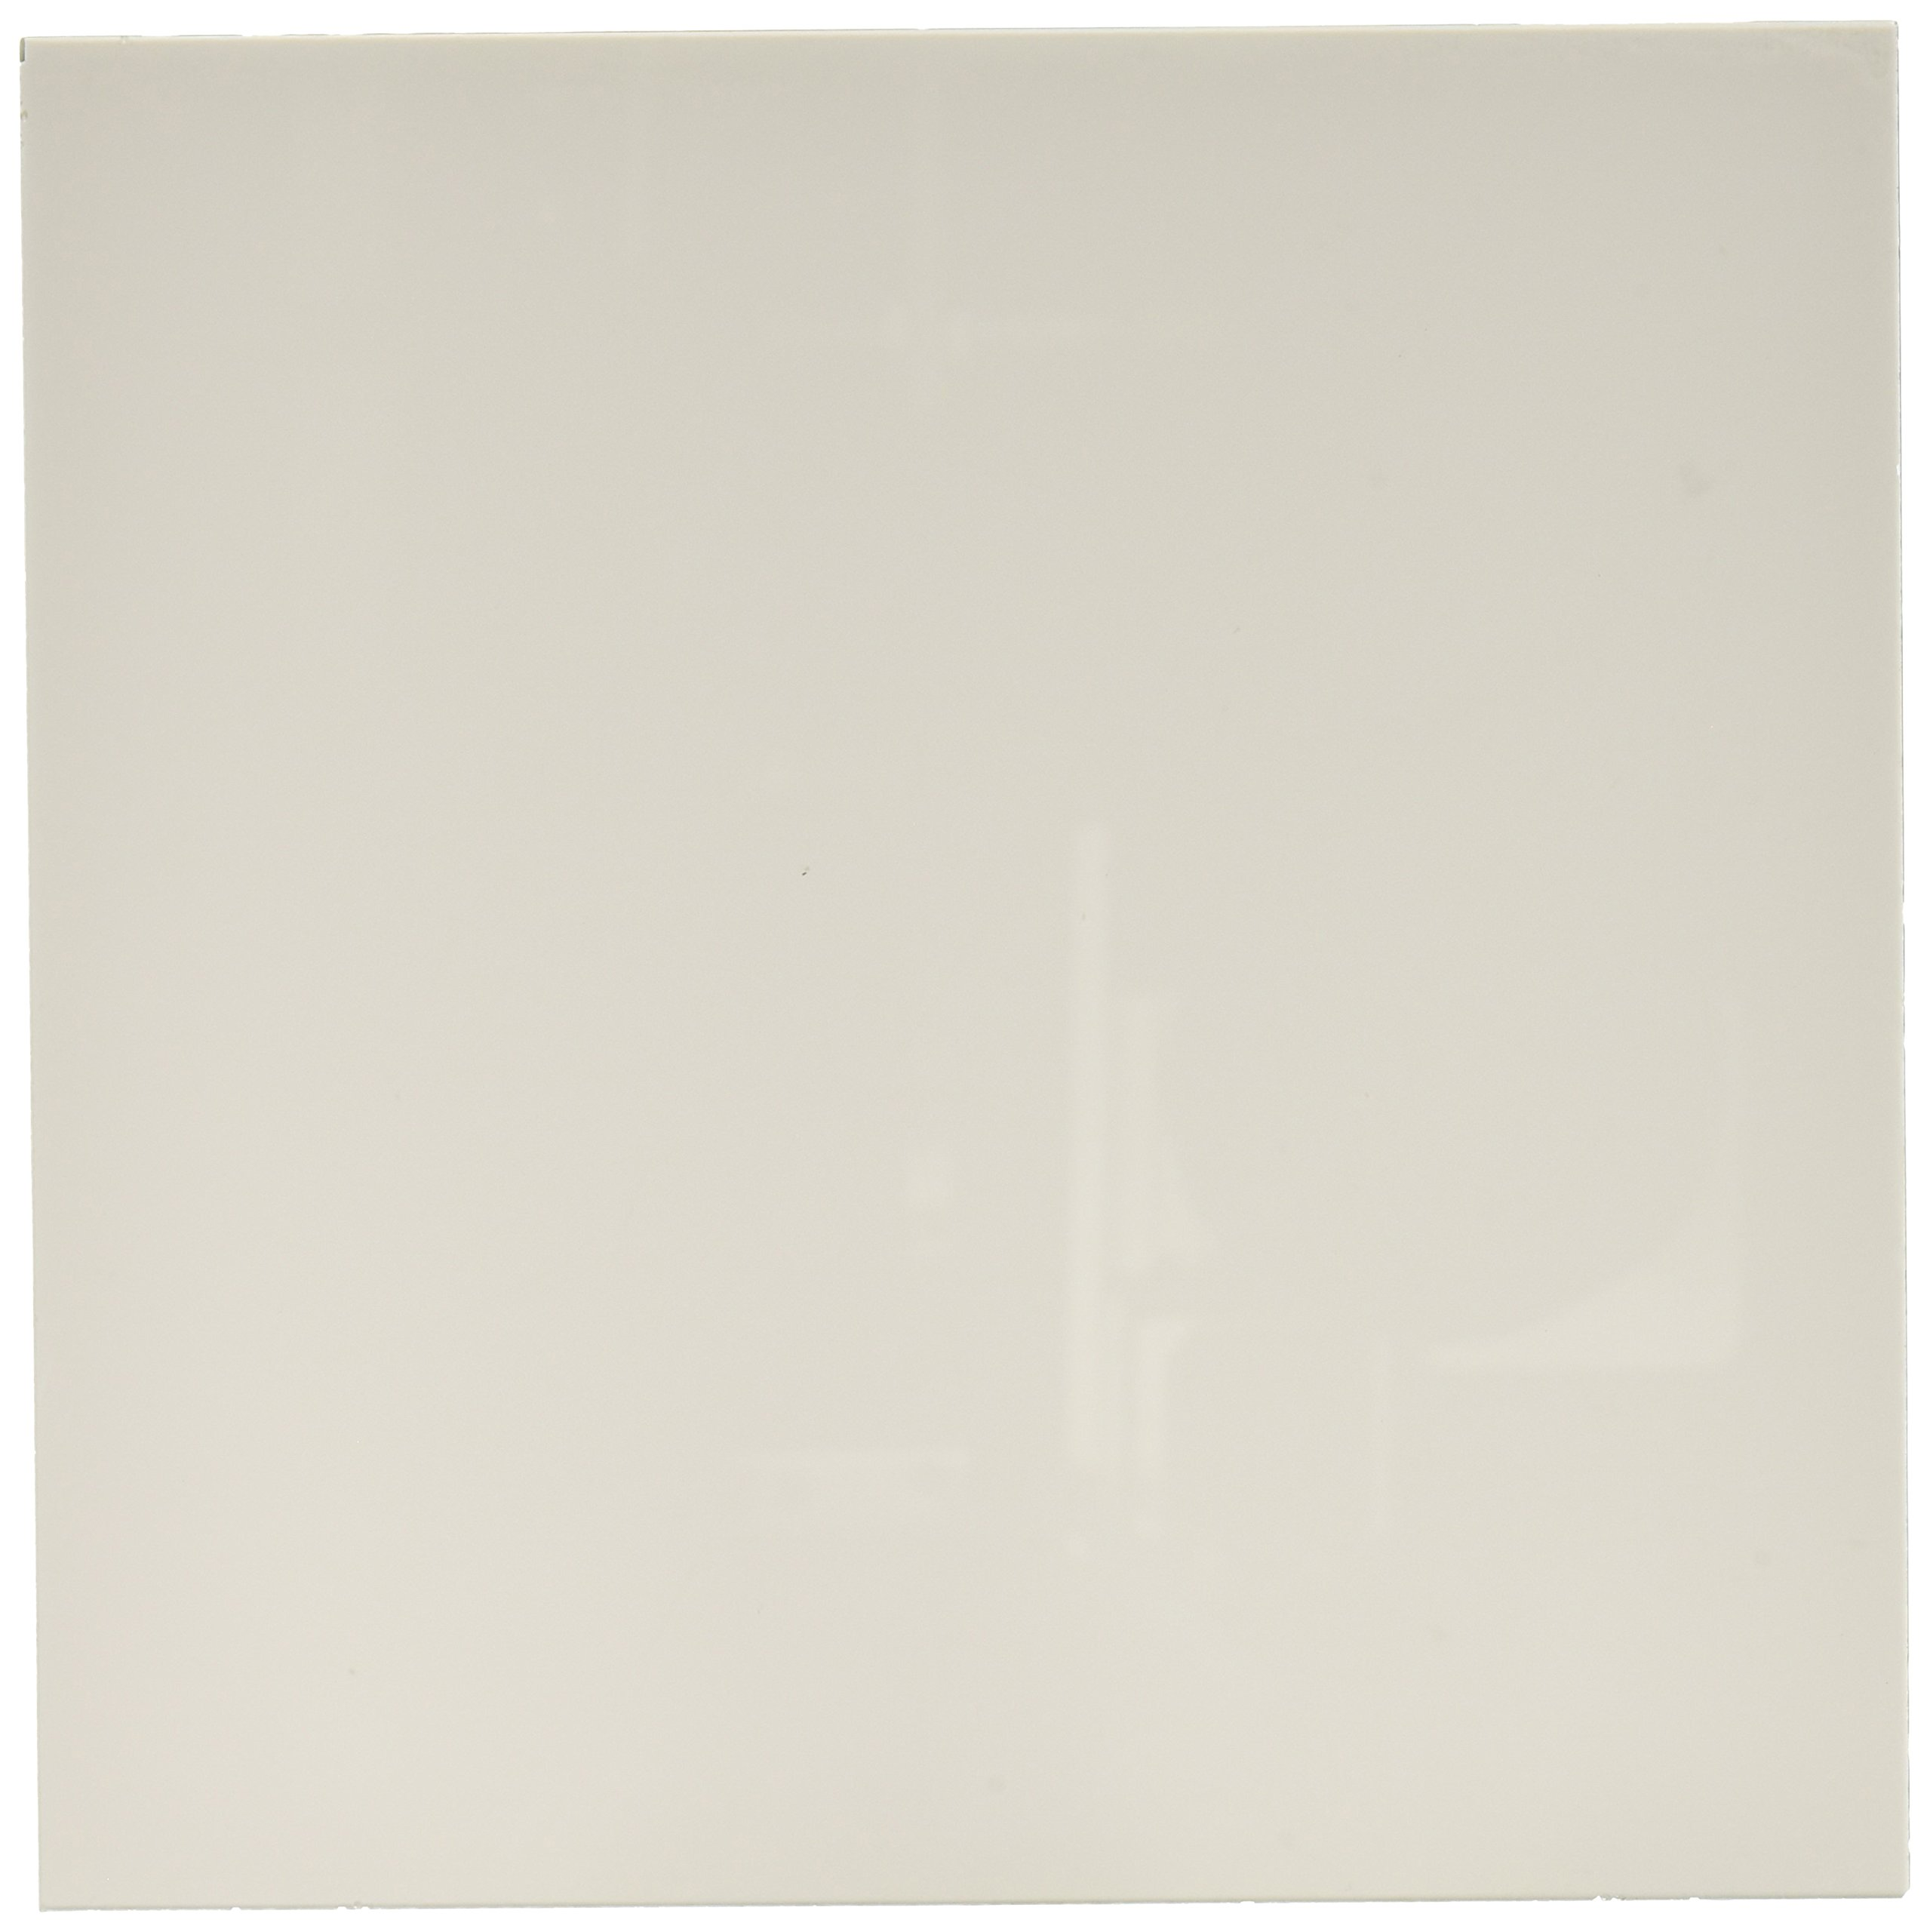 EMD Millipore 1.05715.0001 Glass Backed TLC Classical Silica Plate, 250µm Thick Silica Gel 60 F254, 20cm Width, 20cm Length (Case of 25) by Millipore